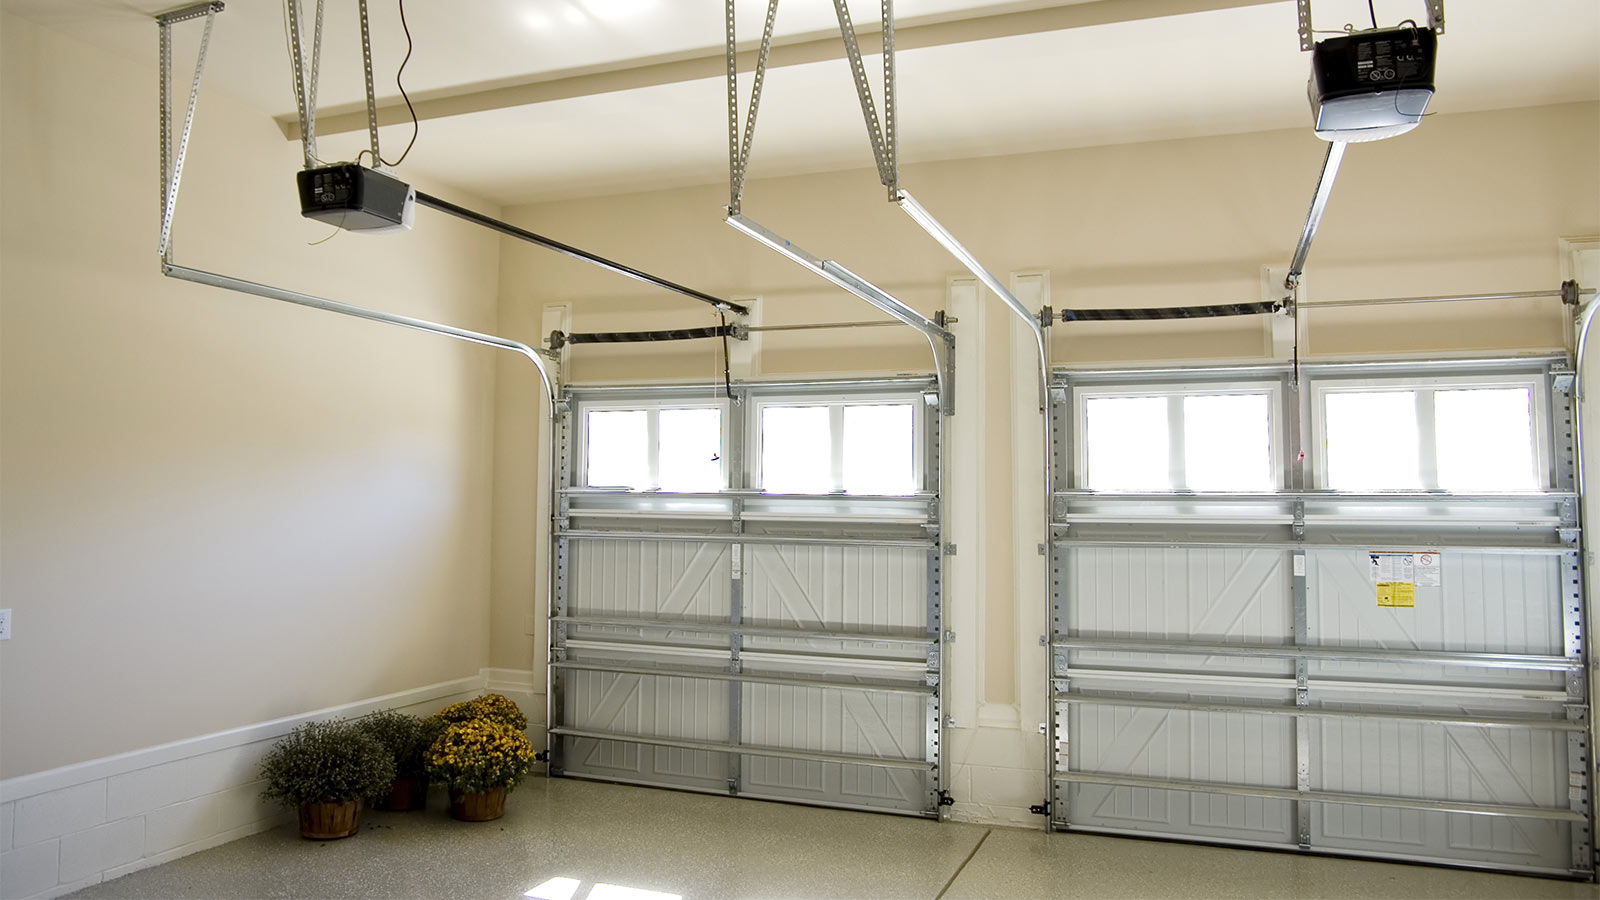 Sectional Garage Doors from Roller Shutters Cambridgeshire suppliers.